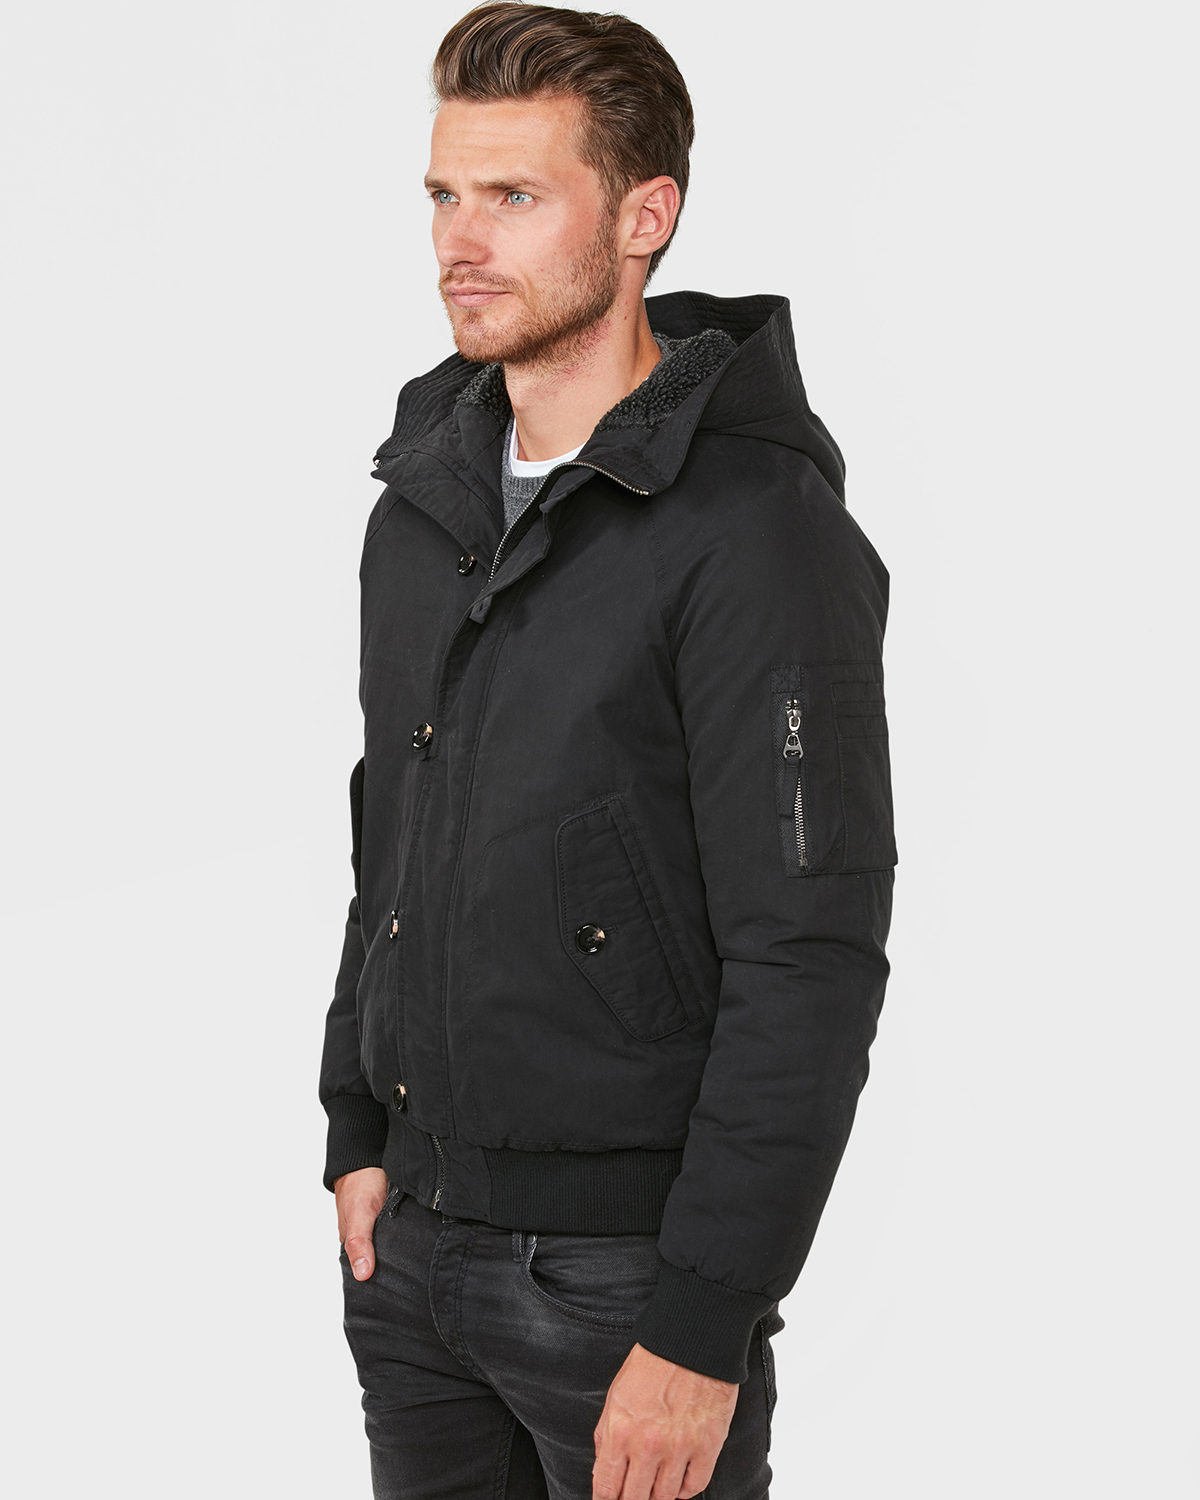 WE Fashion SCHWARZE Fashion WE WE SCHWARZE HERRENJACKE79363693 HERRENJACKE79363693 Fashion SCHWARZE HERRENJACKE79363693 WE SCHWARZE HERRENJACKE79363693 FTlcuK13J